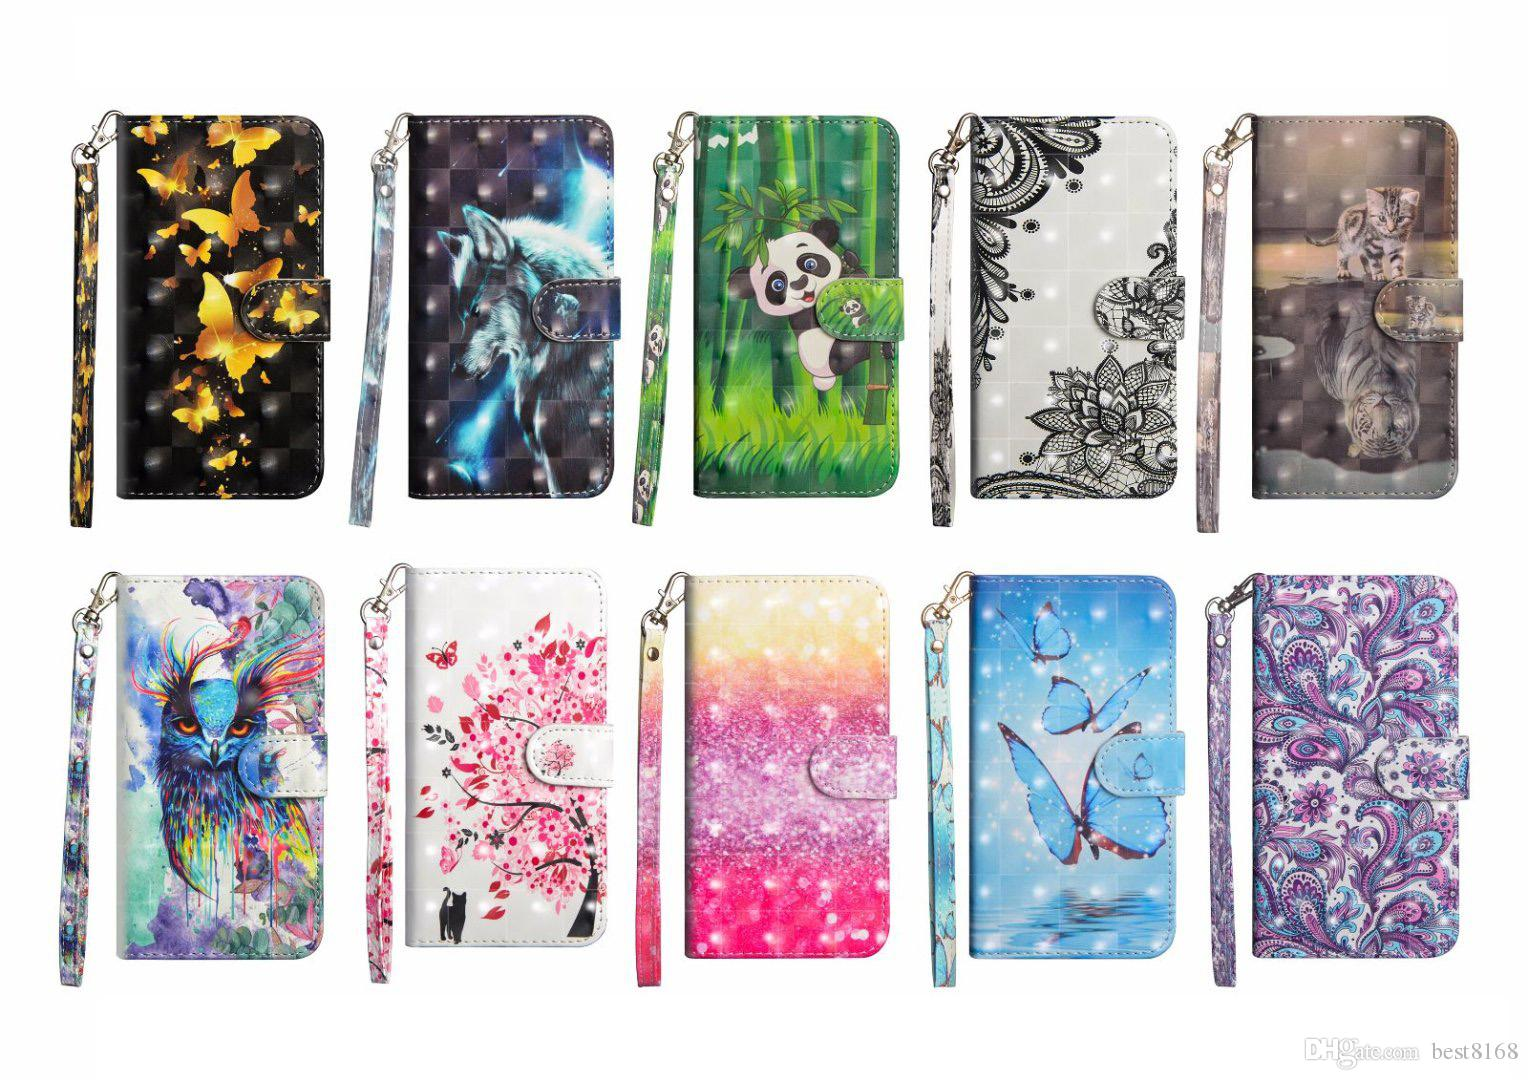 3D Leather Wallet Case For Iphone XR XS MAX Galaxy Note9(J8 A8 A9 Star)2018 Lace Butterfly Flower Panda Tree Bird Flip Cover Cartoon Wolf